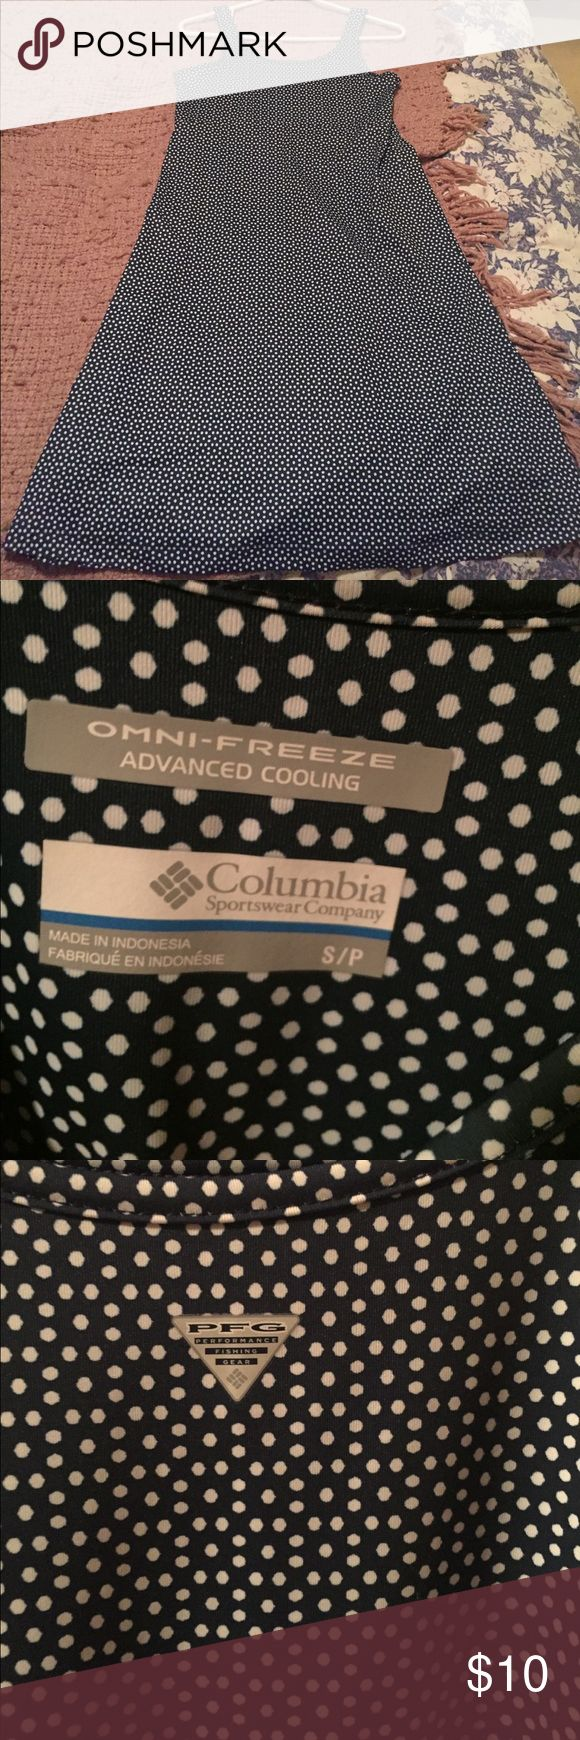 Columbia sportswear dress Excellent condition I might have worn it twice. Light weight fabric to keep you cool. Not clingy at all. Navy blue with white polka dots. Part of Columbia's performance gear collection. Fitted up top with a flare from chest to hem. First two photos are stock photos to show fit.  Same dress in those just different pattern. Columbia Dresses